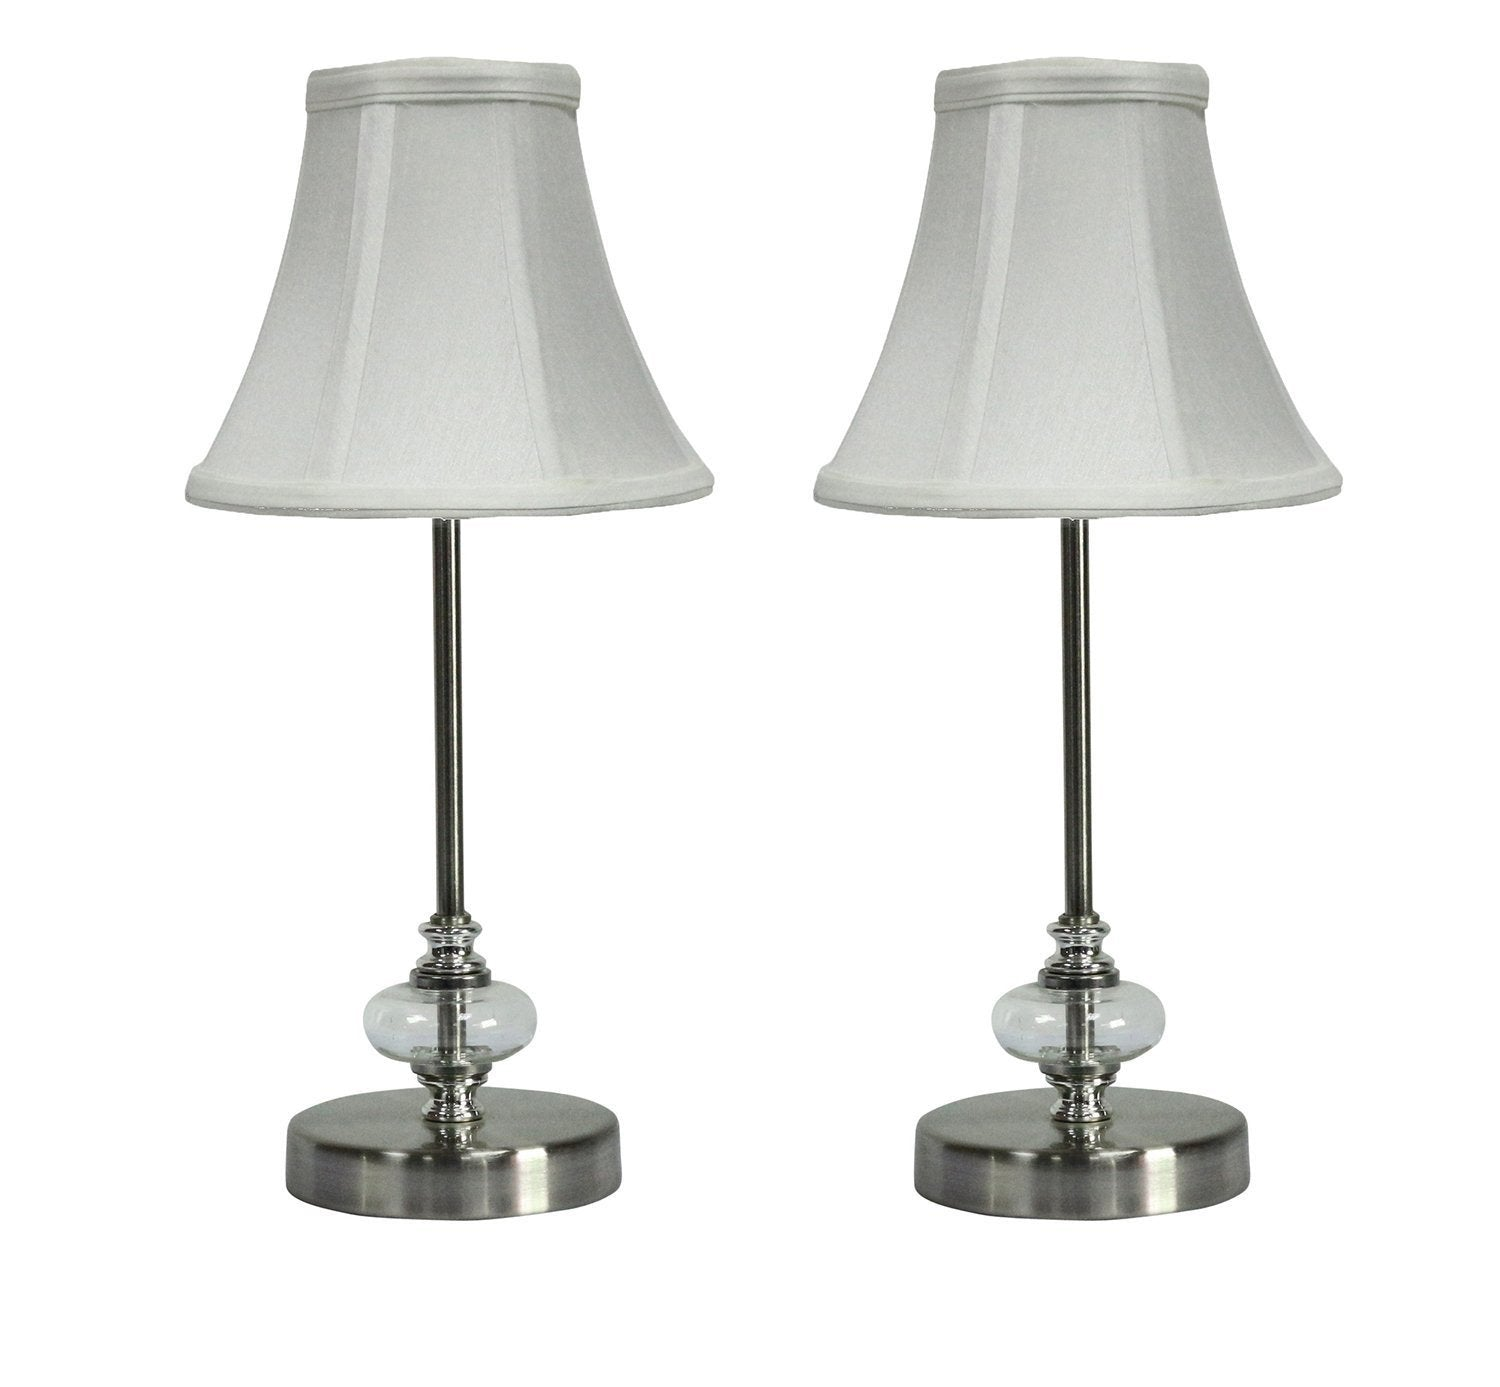 Lucas Mini Accent Lamp - Set of 2